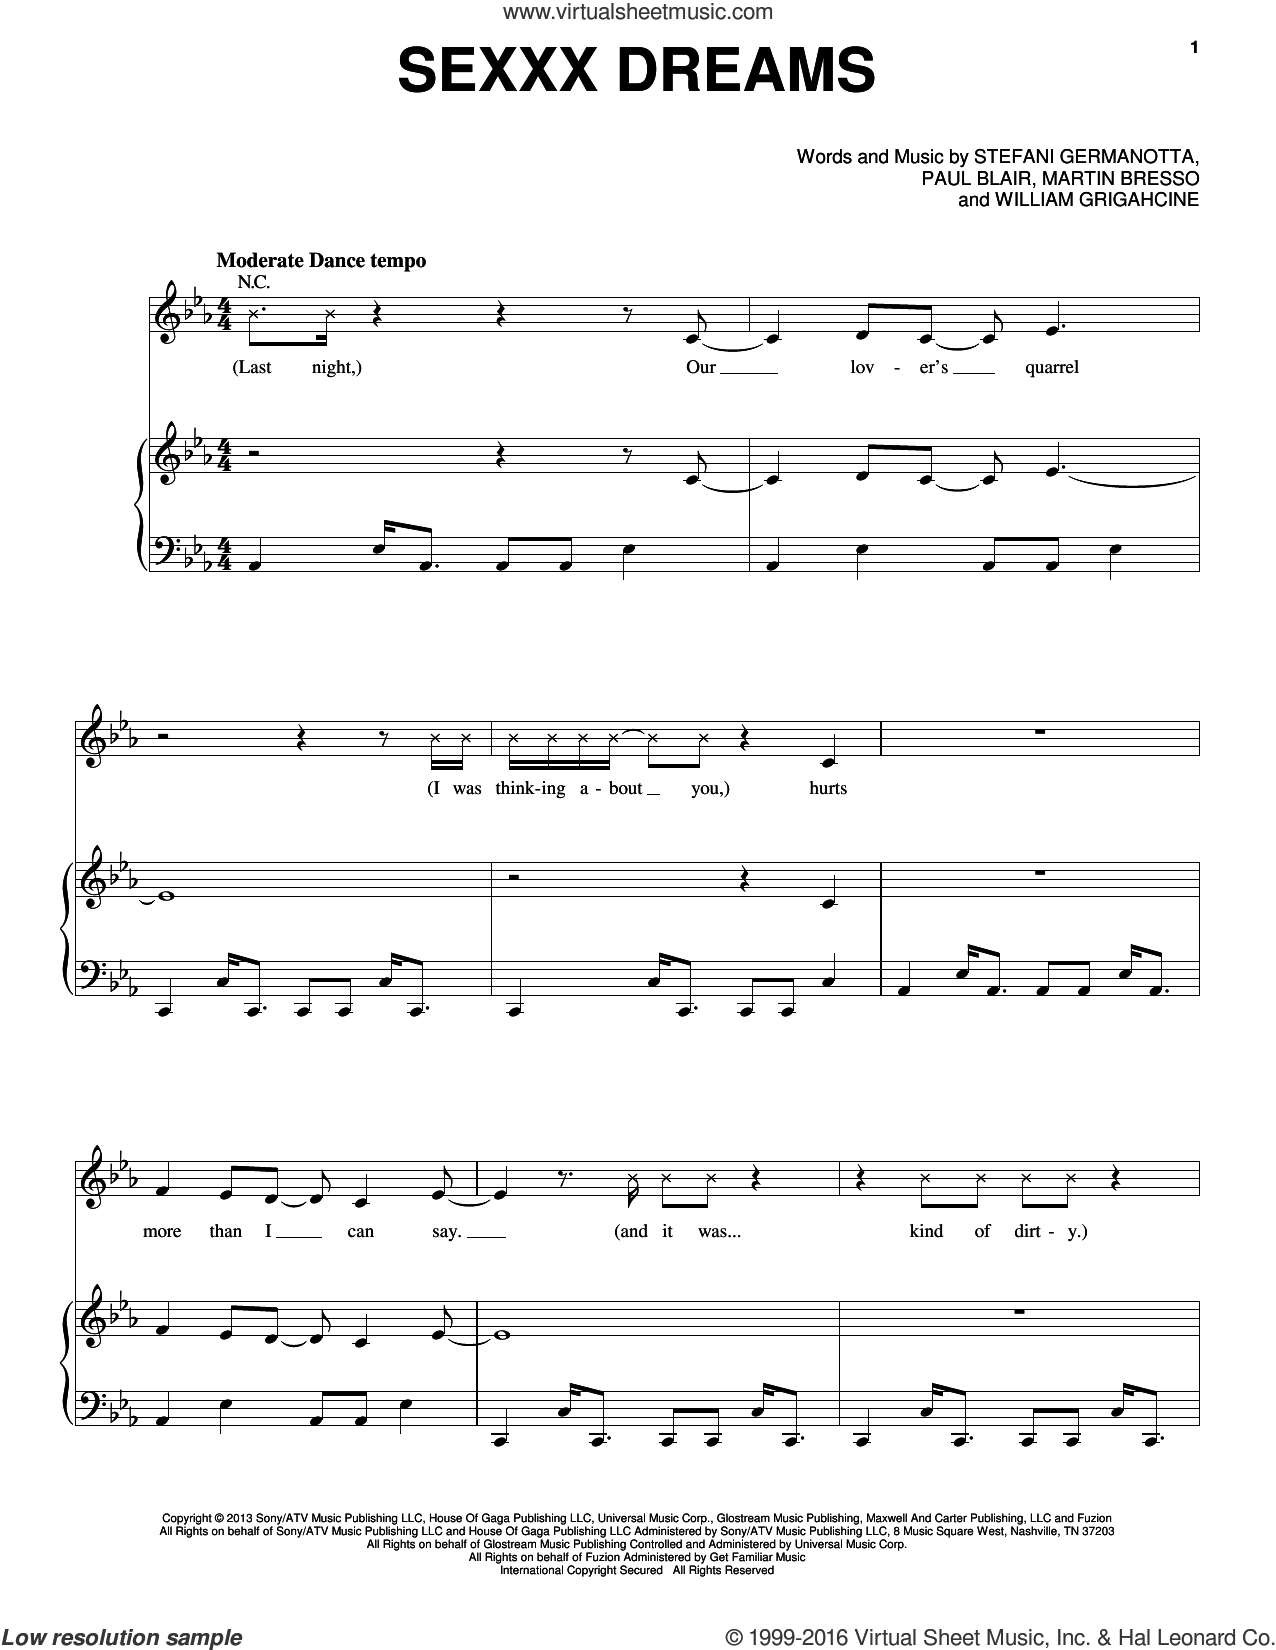 Sexxx Dreams sheet music for voice, piano or guitar by William Grigahcine, Lady Gaga and Paul Blair. Score Image Preview.